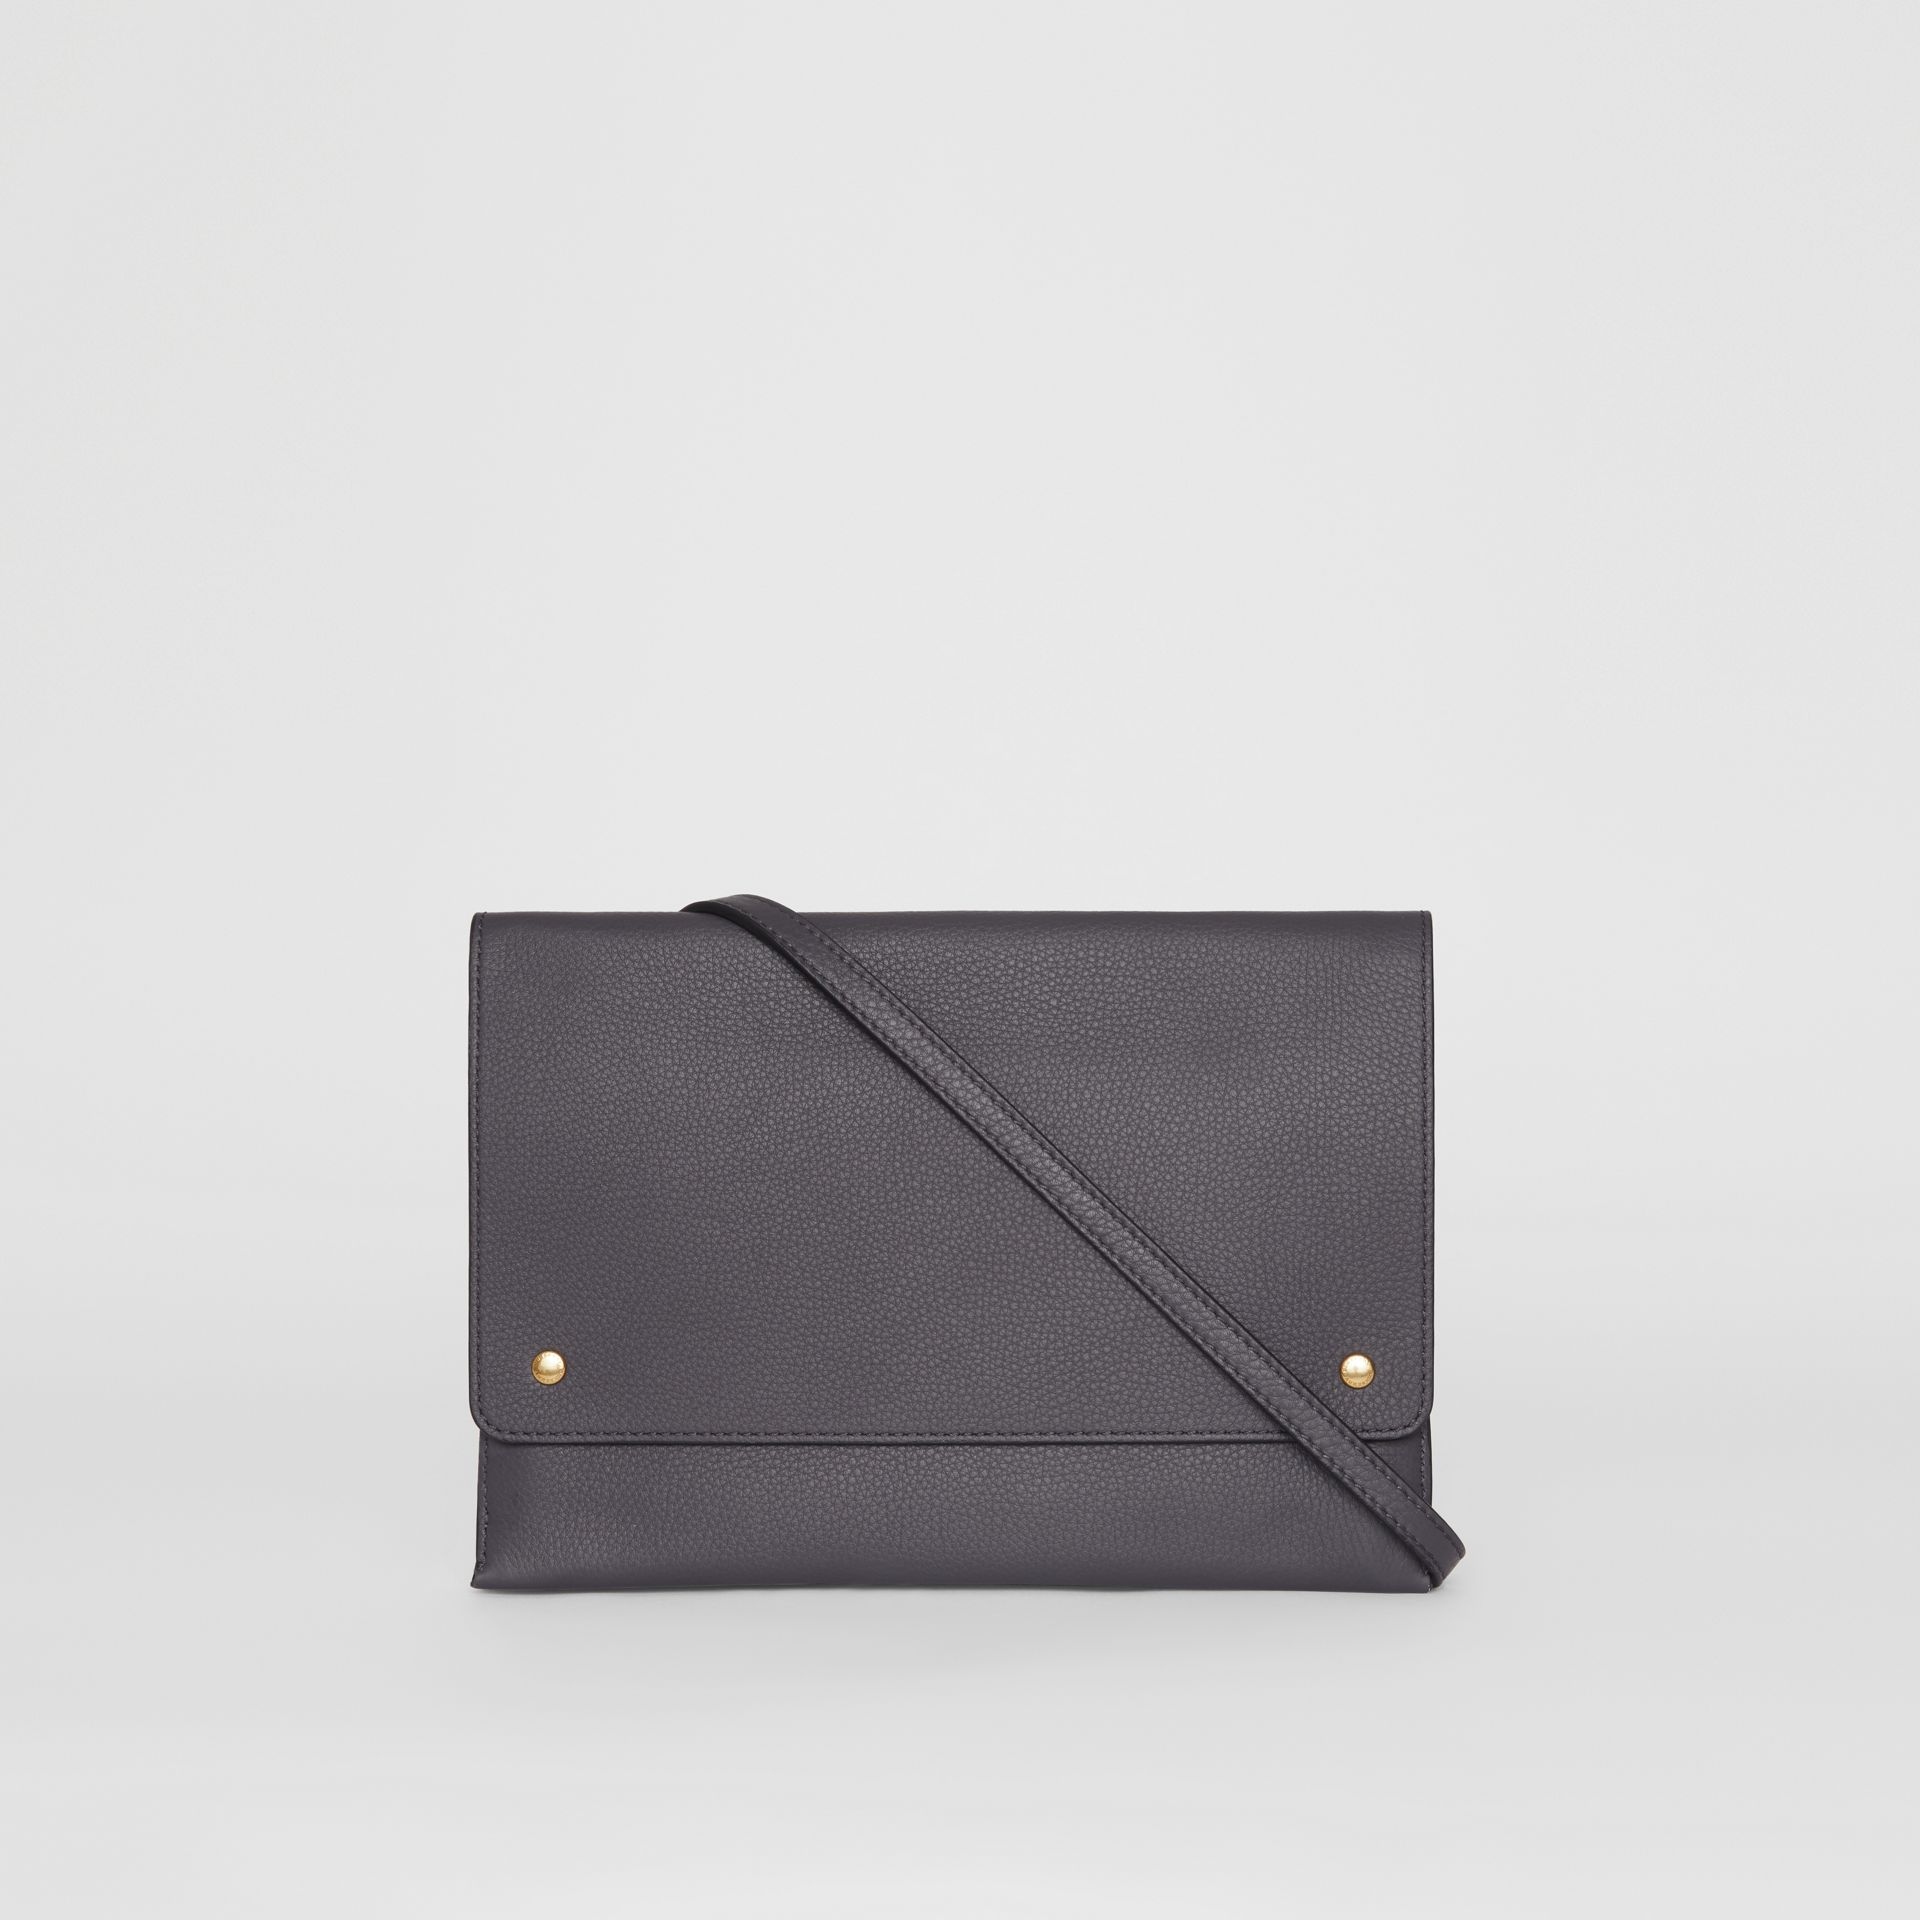 Leather Pouch with Detachable Strap in Charcoal Grey - Women | Burberry - gallery image 5